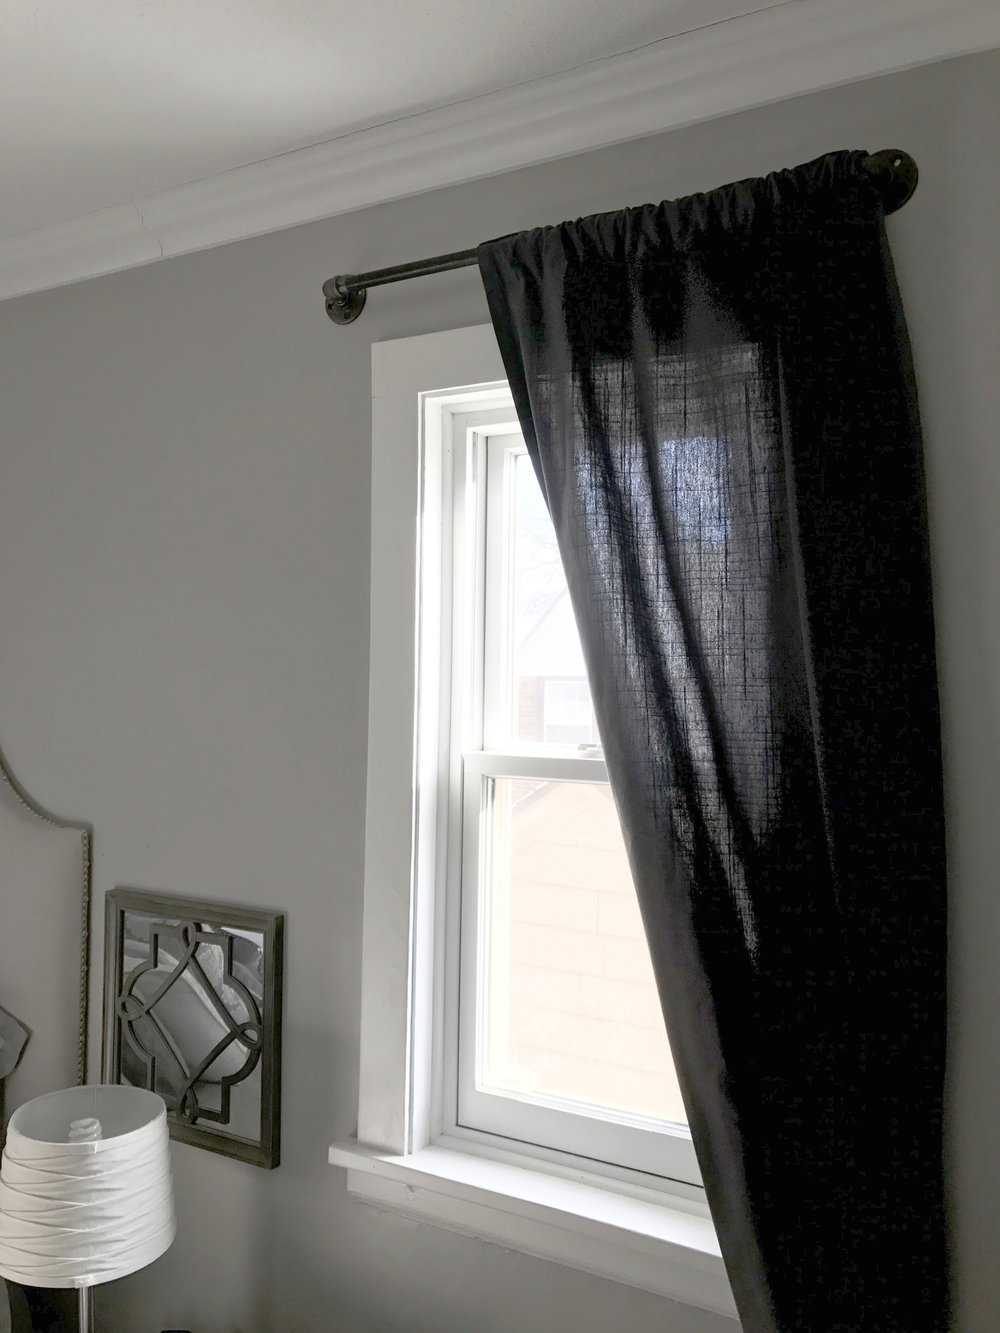 I love how these simple curtain rods add so much masculine industrial style.